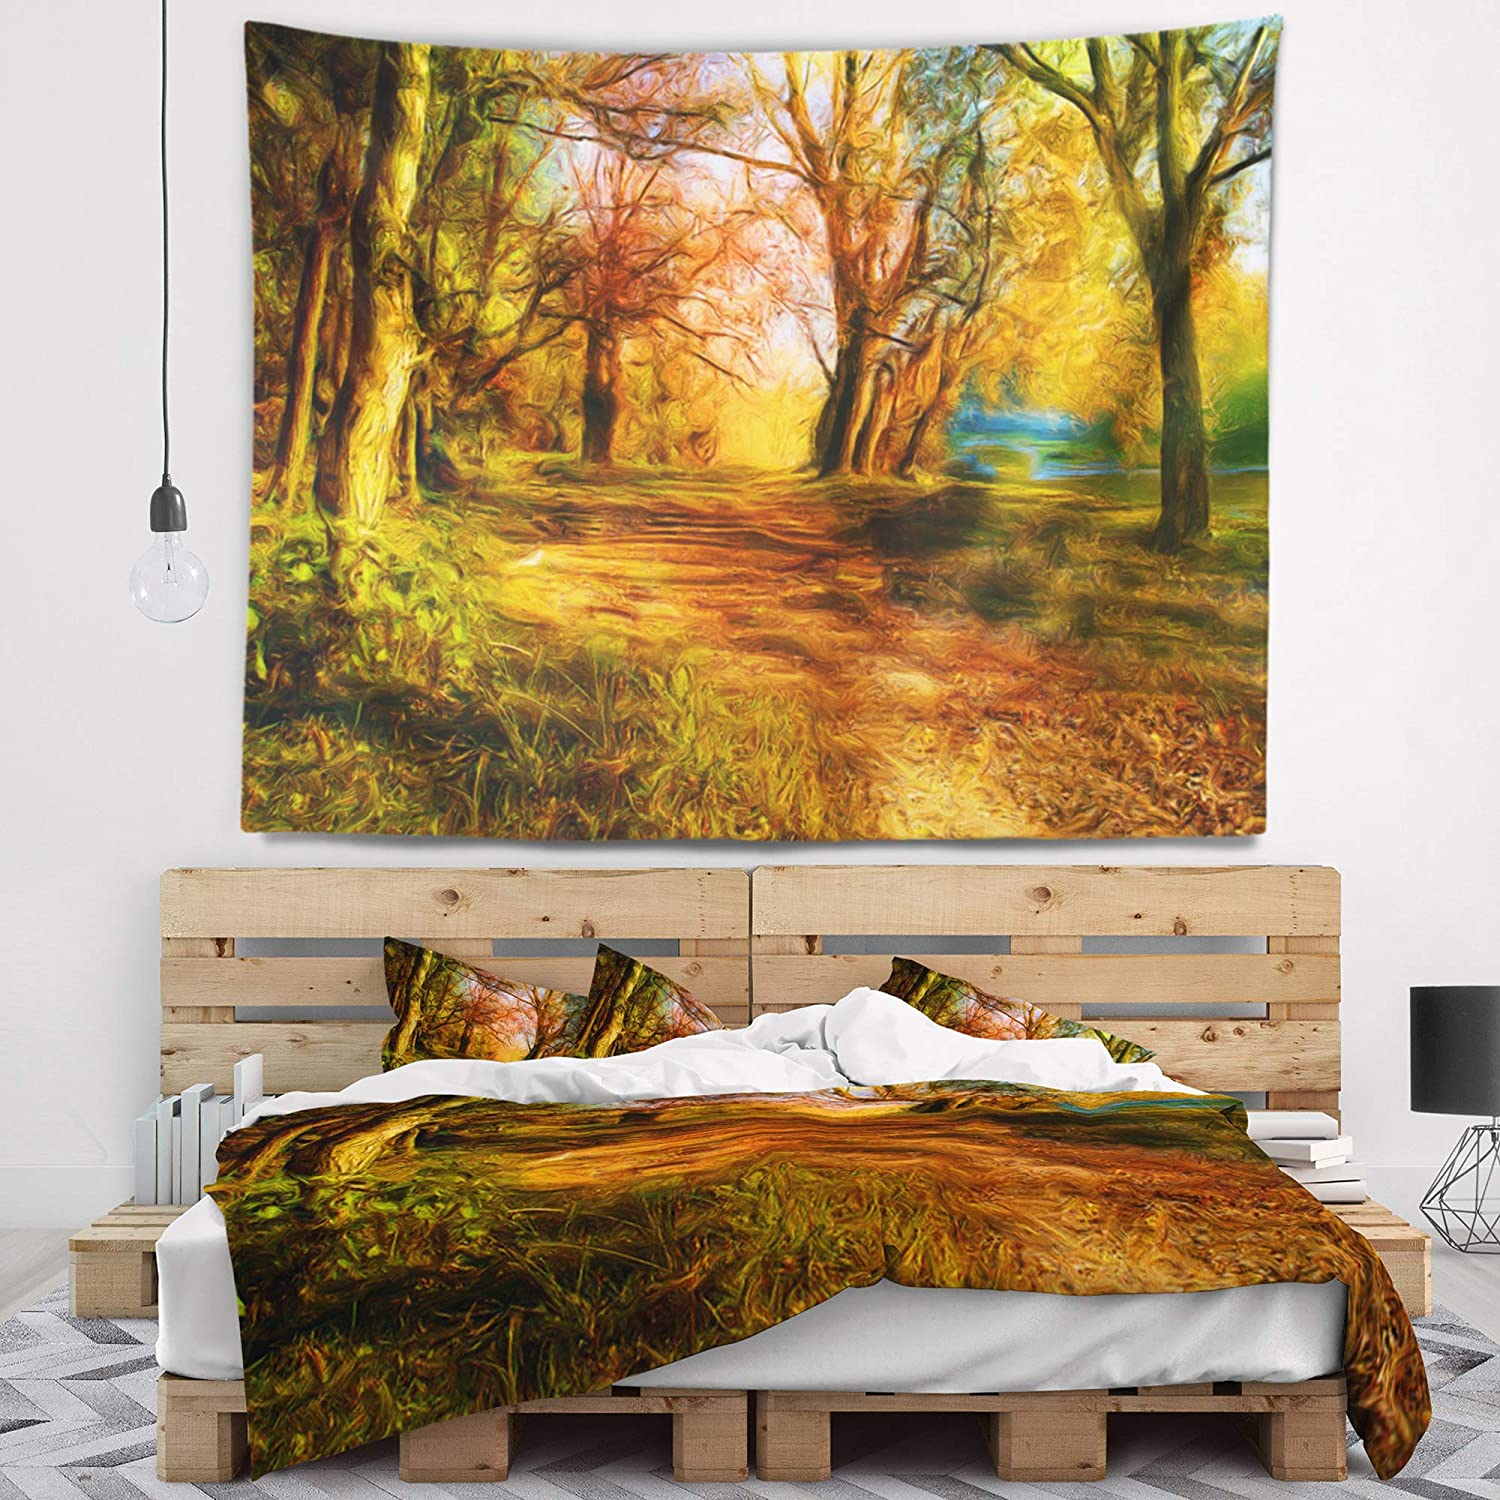 80 in Created On Lightweight Polyester Fabric x 68 in Designart TAP6401-80-68  Beauty of Nature Landscape Blanket D/écor Art for Home and Office Wall Tapestry x Large